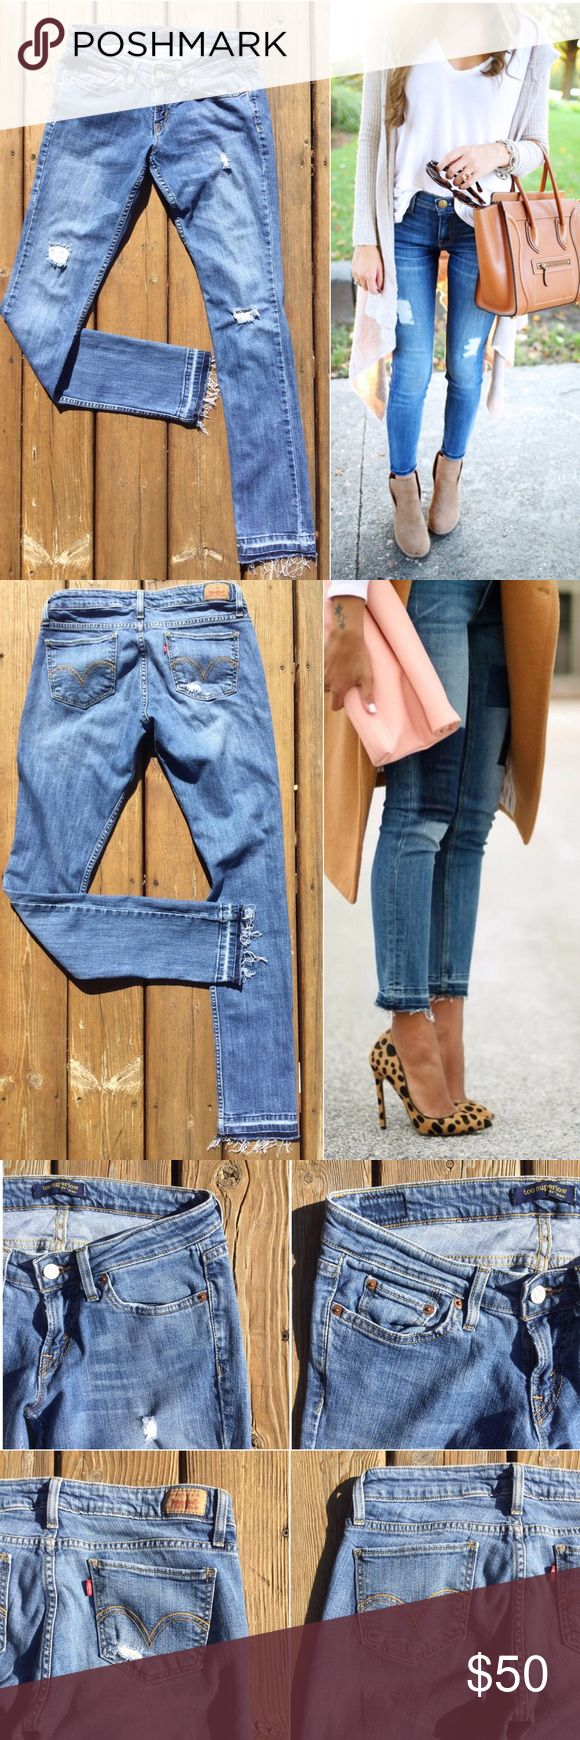 """LEVI'S 524 Too Superlow Skinn Jeans Sz 7 By far my favorite denim listing in my closet right now! Love the cool, broken-in vibe of these distressed Levi's with released hem. So many styling options for this season. (Modeled pics from southerncurlsandpearls.com & theyallhateus.com represent ideas for styling released hem skinny jeans only, not jeans for sale). App Meas -  Waist: 14.5"""" from side to side; Front Rise: 7.5""""; Back Rise: 12"""" ; Inseam: 32""""; Leg opening at hem: 6"""" from side to side…"""